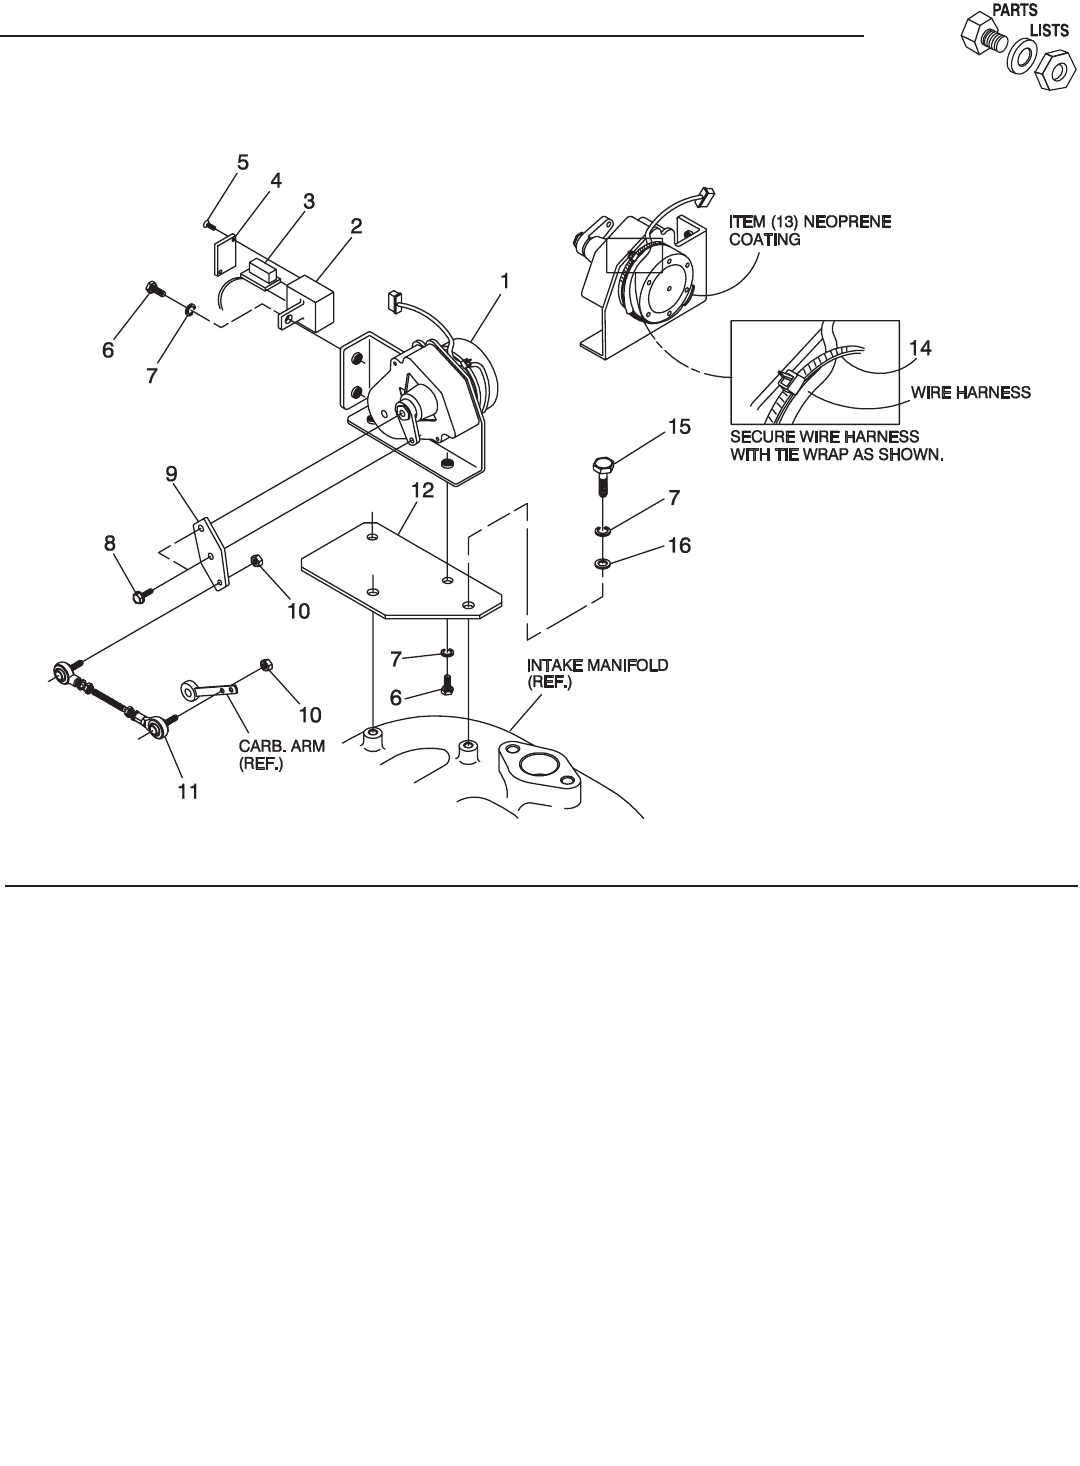 004091 2 furthermore subsnacapnaui soclog furthermore Gas Generators Parts List as well Onan Parts Diagram Online likewise Wiring Diagram For Generac Generator 7500. on generac generators manuals